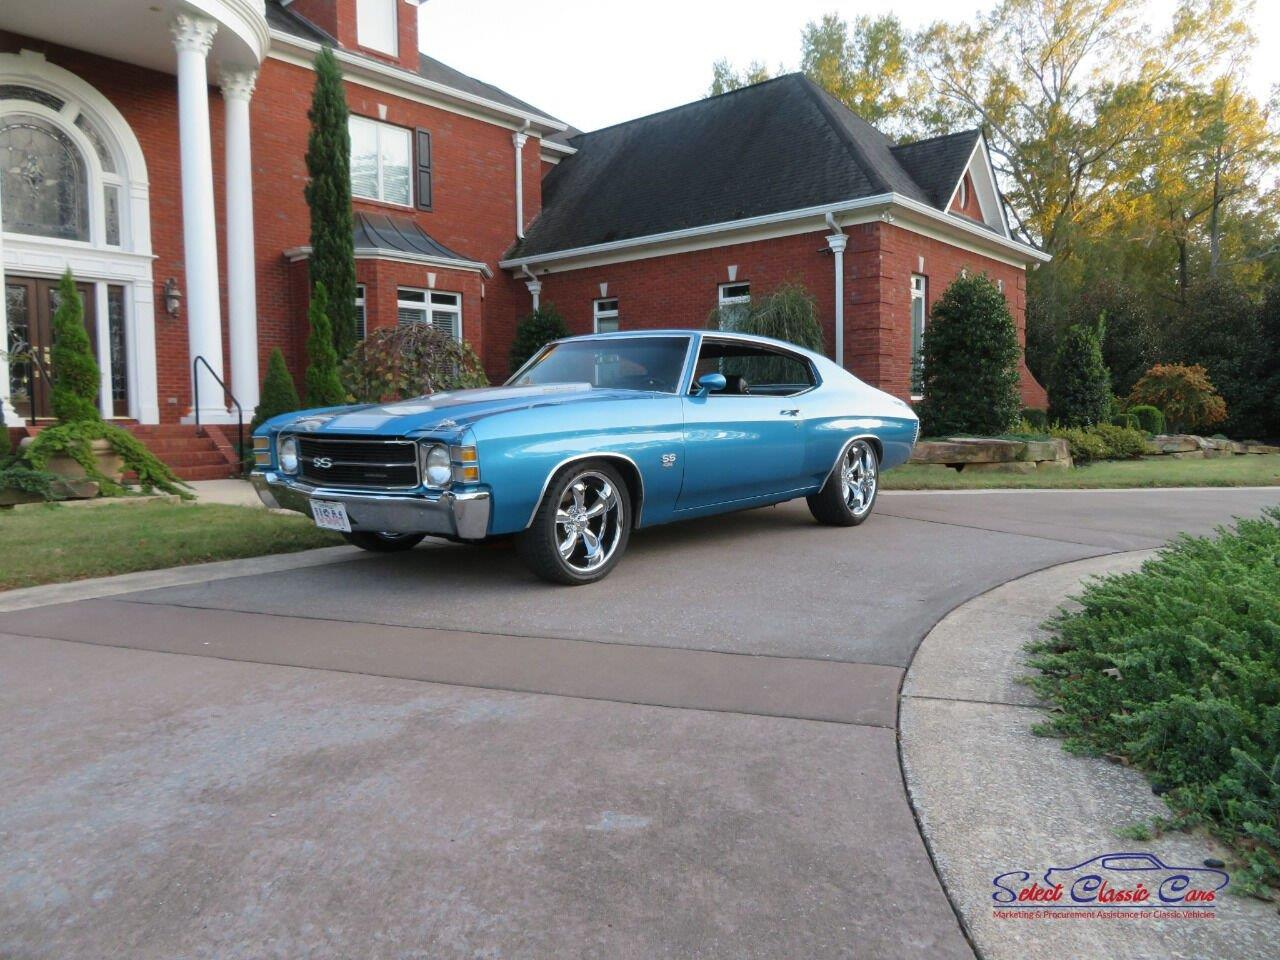 1971 Chevrolet Chevelle (CC-1421375) for sale in Hiram, Georgia